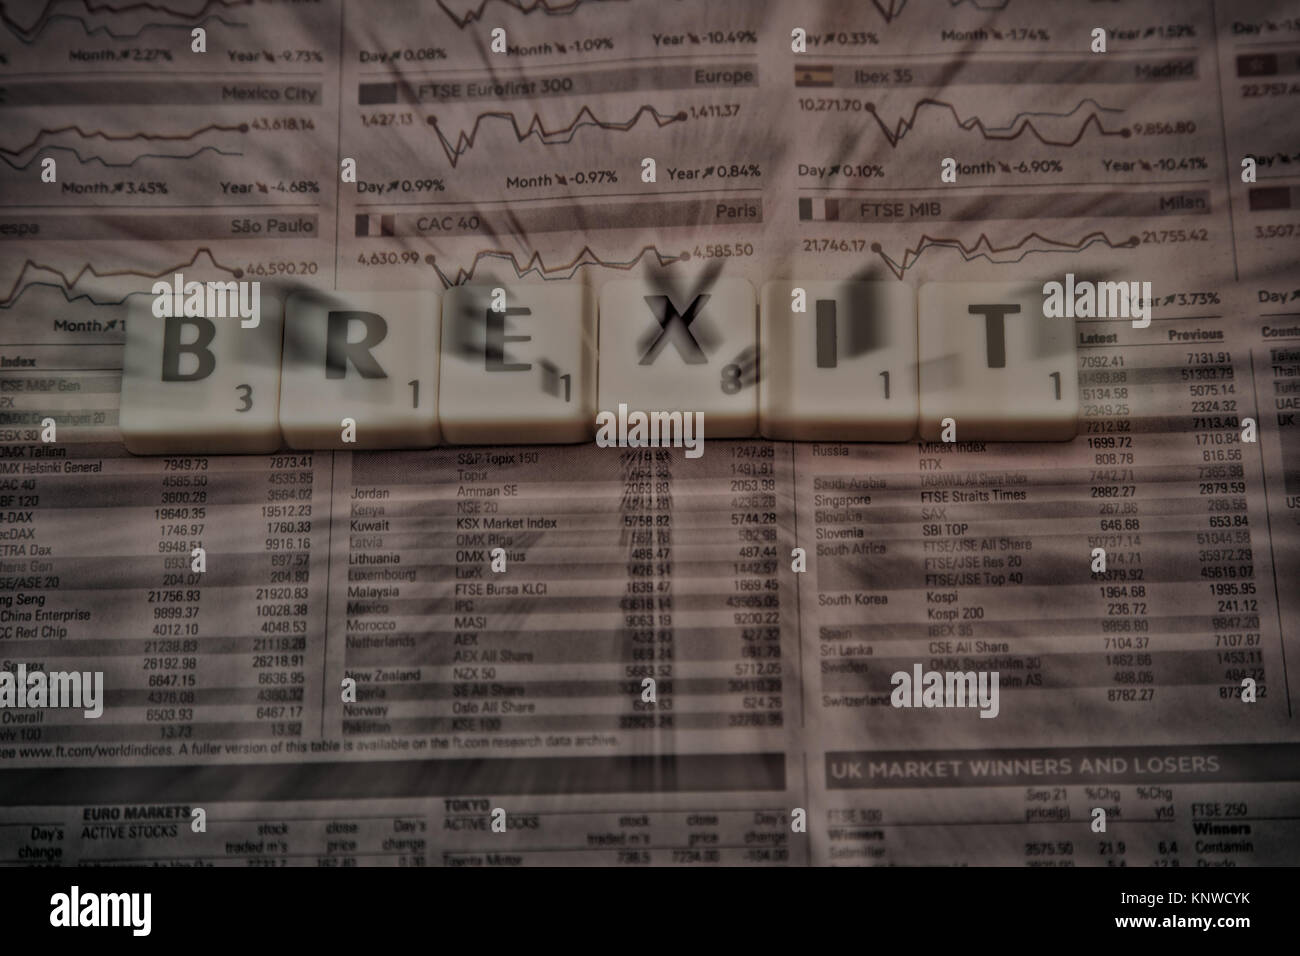 Blurred Brexit image - Stock Image